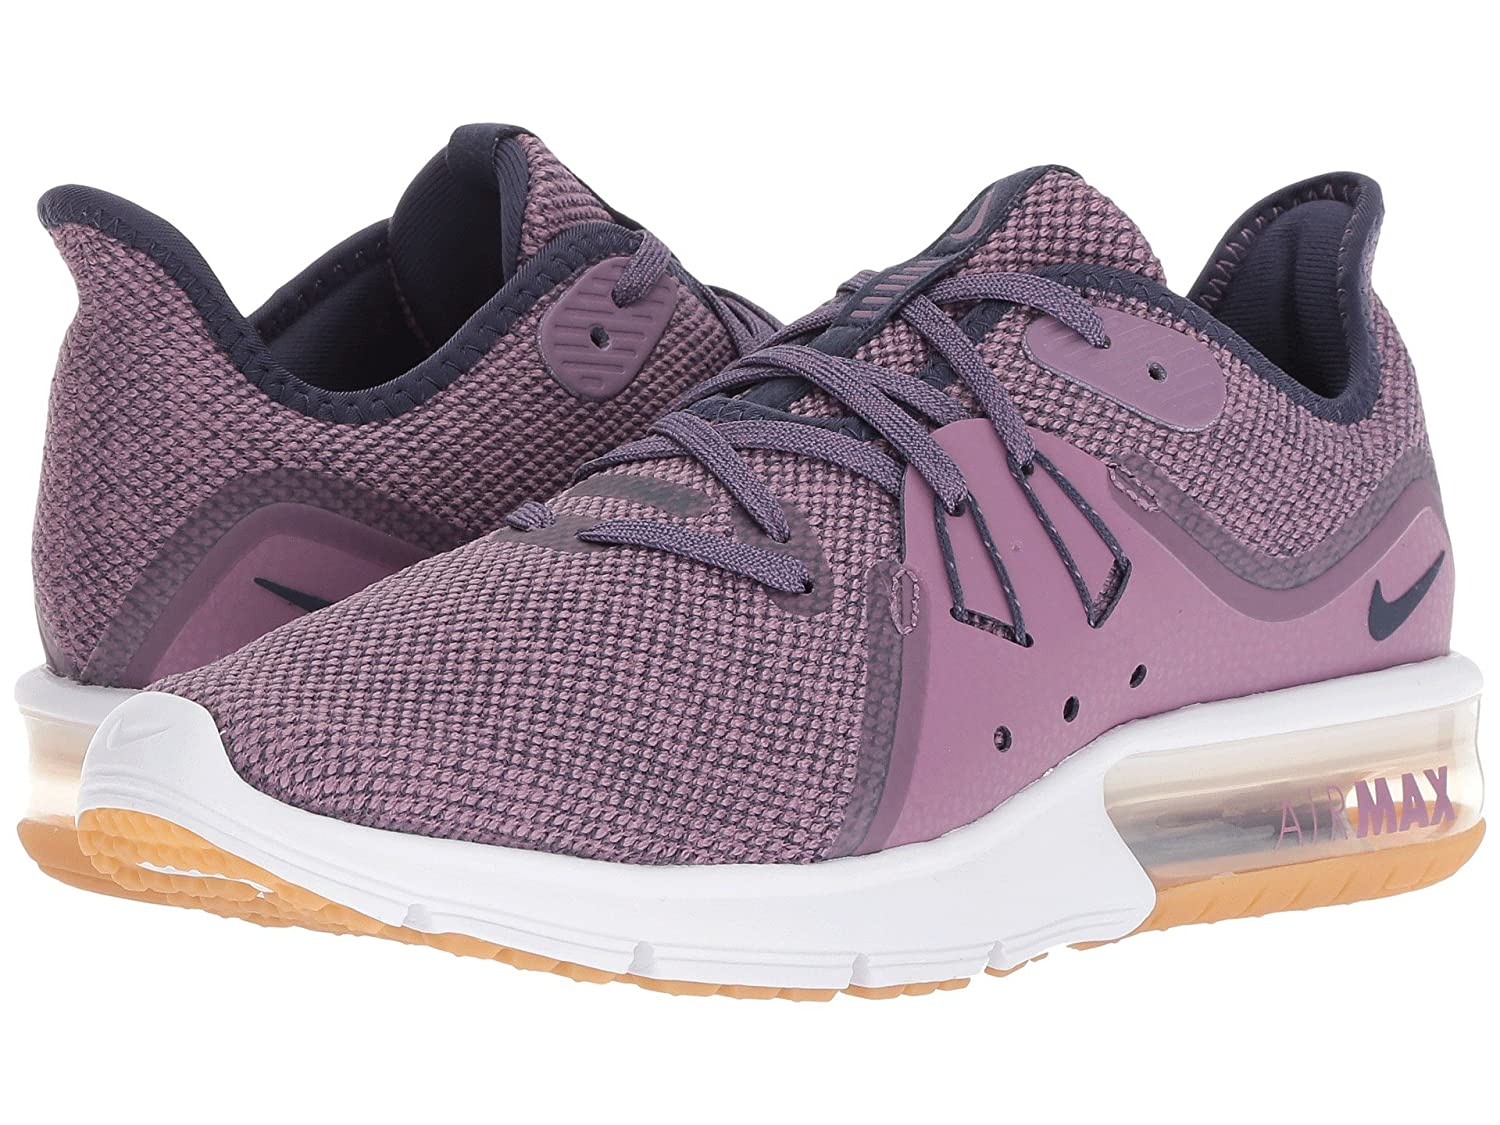 timeless design a8149 2659c Nike Women s s WMNS Air Max Sequent 3 Fitness Shoes Multicolour (Violet Dust  Neutral Indigo Obsidian 501) 9 UK  Amazon.co.uk  Shoes   Bags